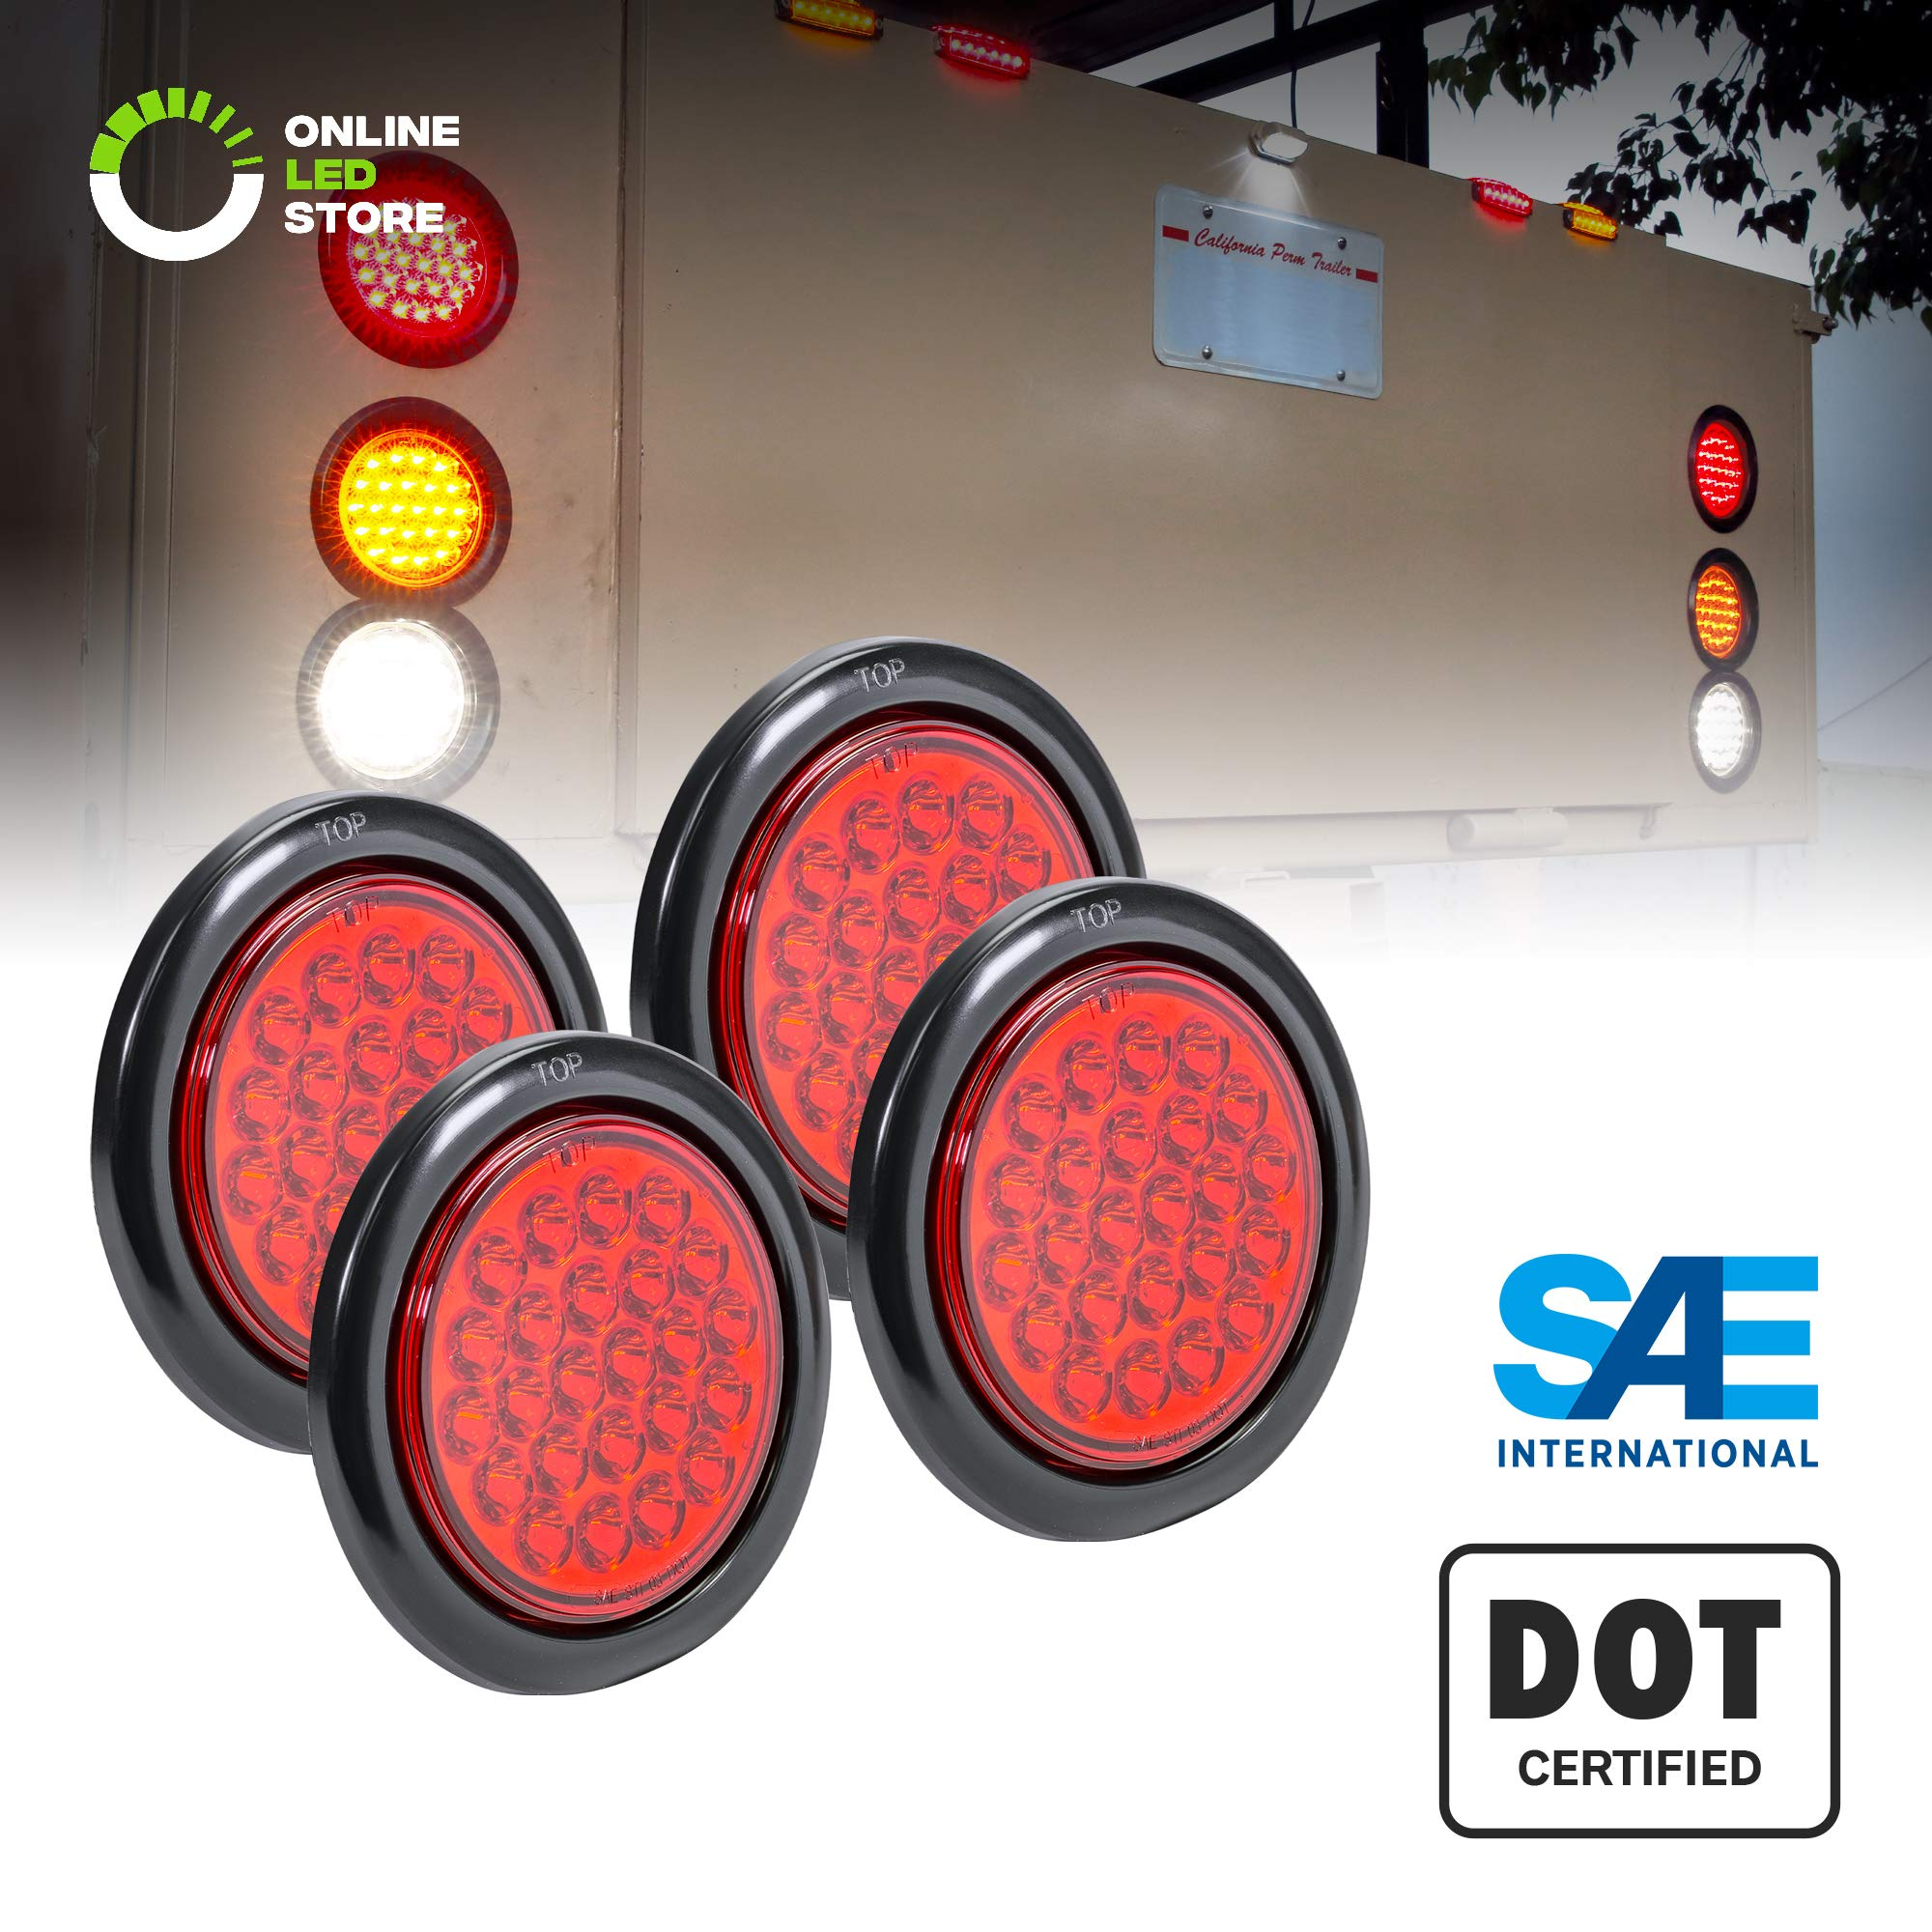 4pc 4'' Round Red 24 LED Trailer Tail Lights [DOT Certified] [Grommet & Plug Included] [IP67 Waterproof] Turn Stop Brake Trailer Lights for RV Jeep Truck